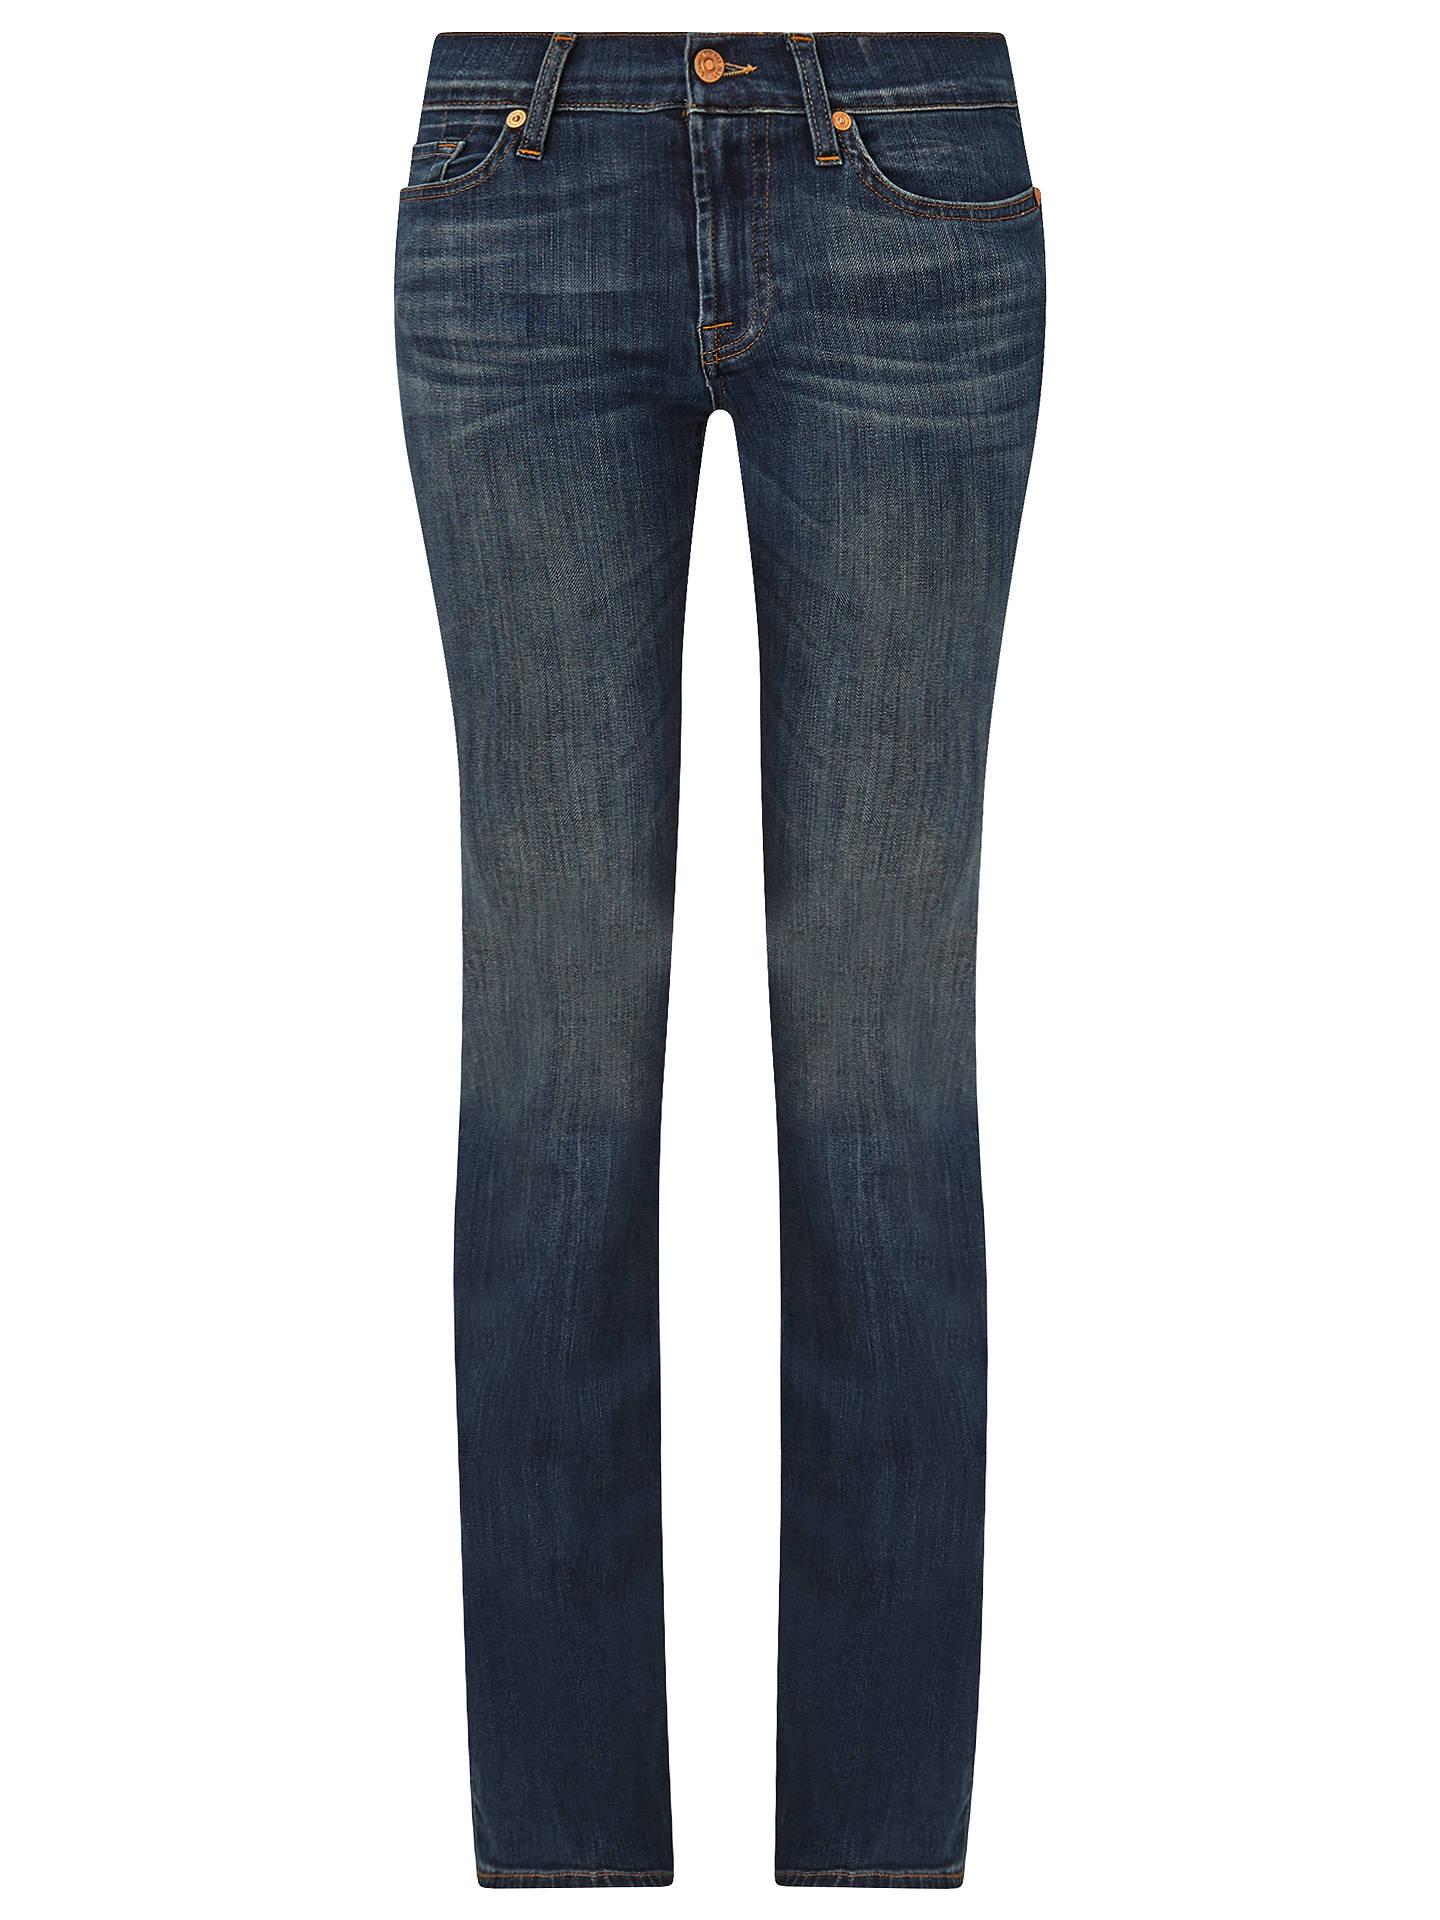 33c0e7ea950f ... Buy 7 For All Mankind Mid-Rise Bootcut Jeans